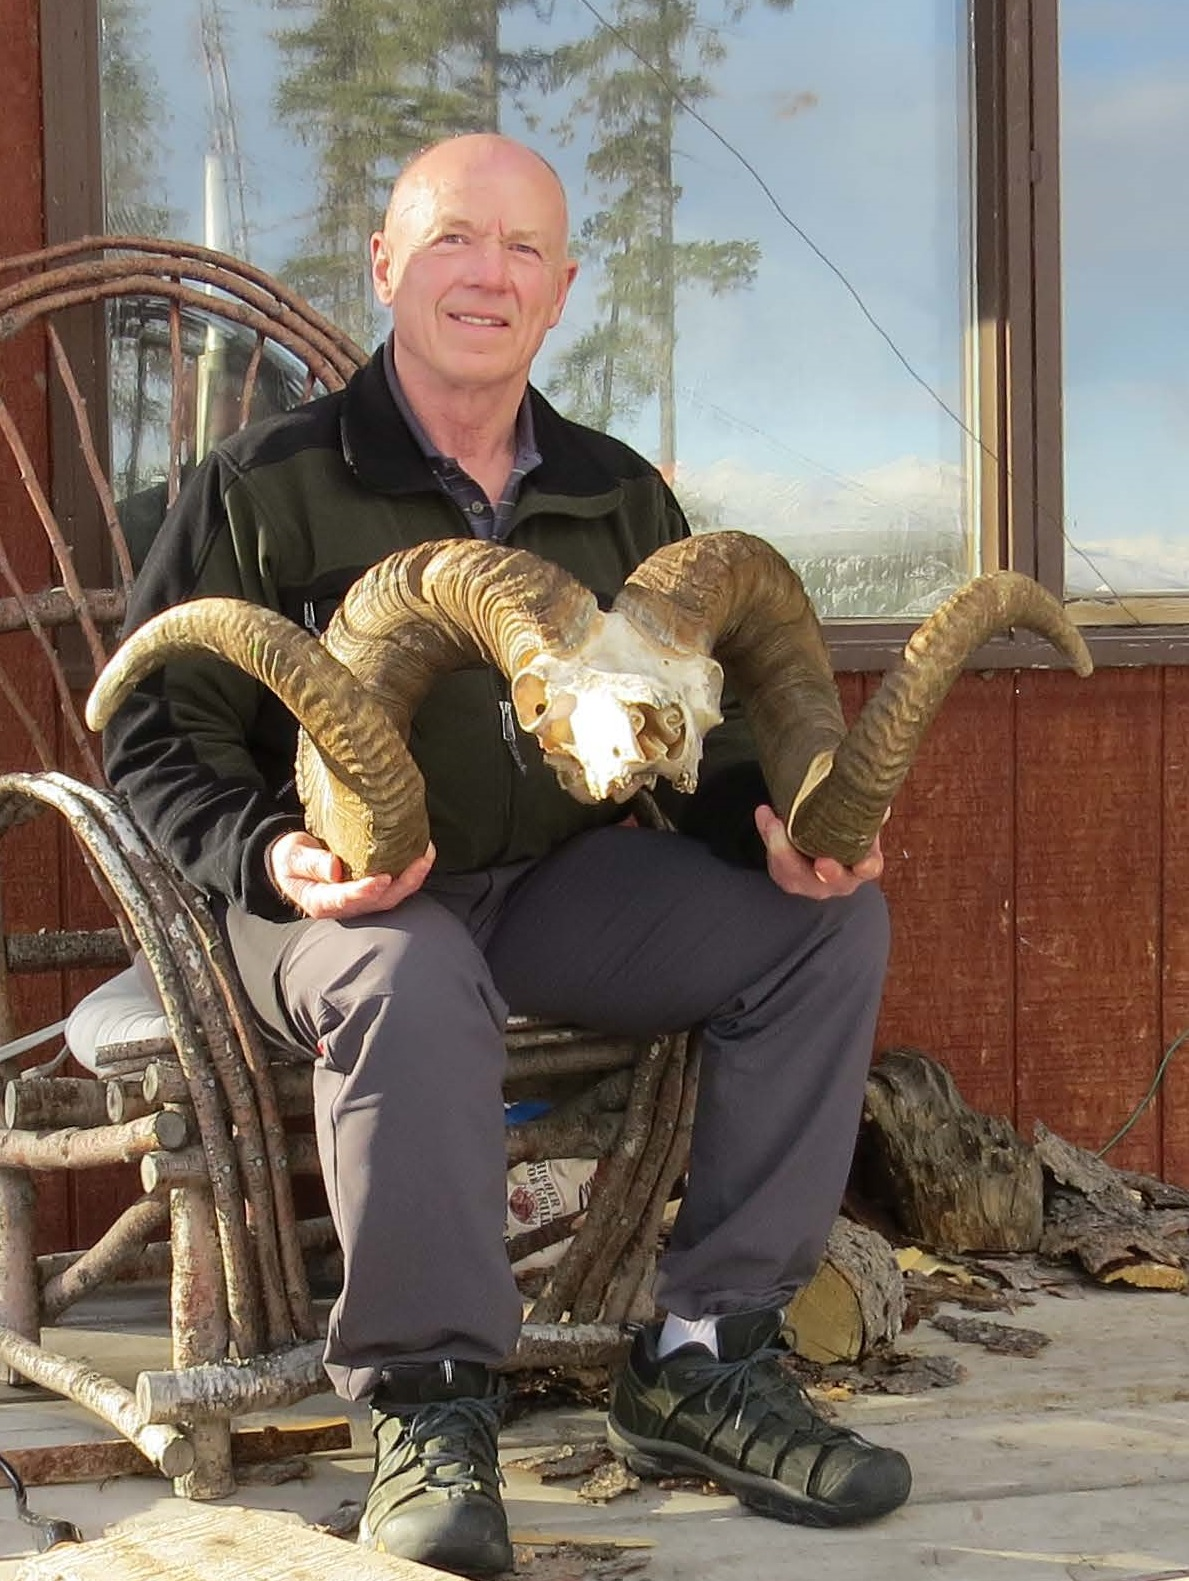 "MEET THE AUTHOR - Lewis D. Bradley47 years Alaska residentServed in US Army 1967-1970Hunted Alaska since 1968Teacher & Coach for 40 yearsAntler, Horn & Bone CarverHarvested 35 Dall Rams14 Rams over 40""9 B&C Dalls with 3 Rams 180+"